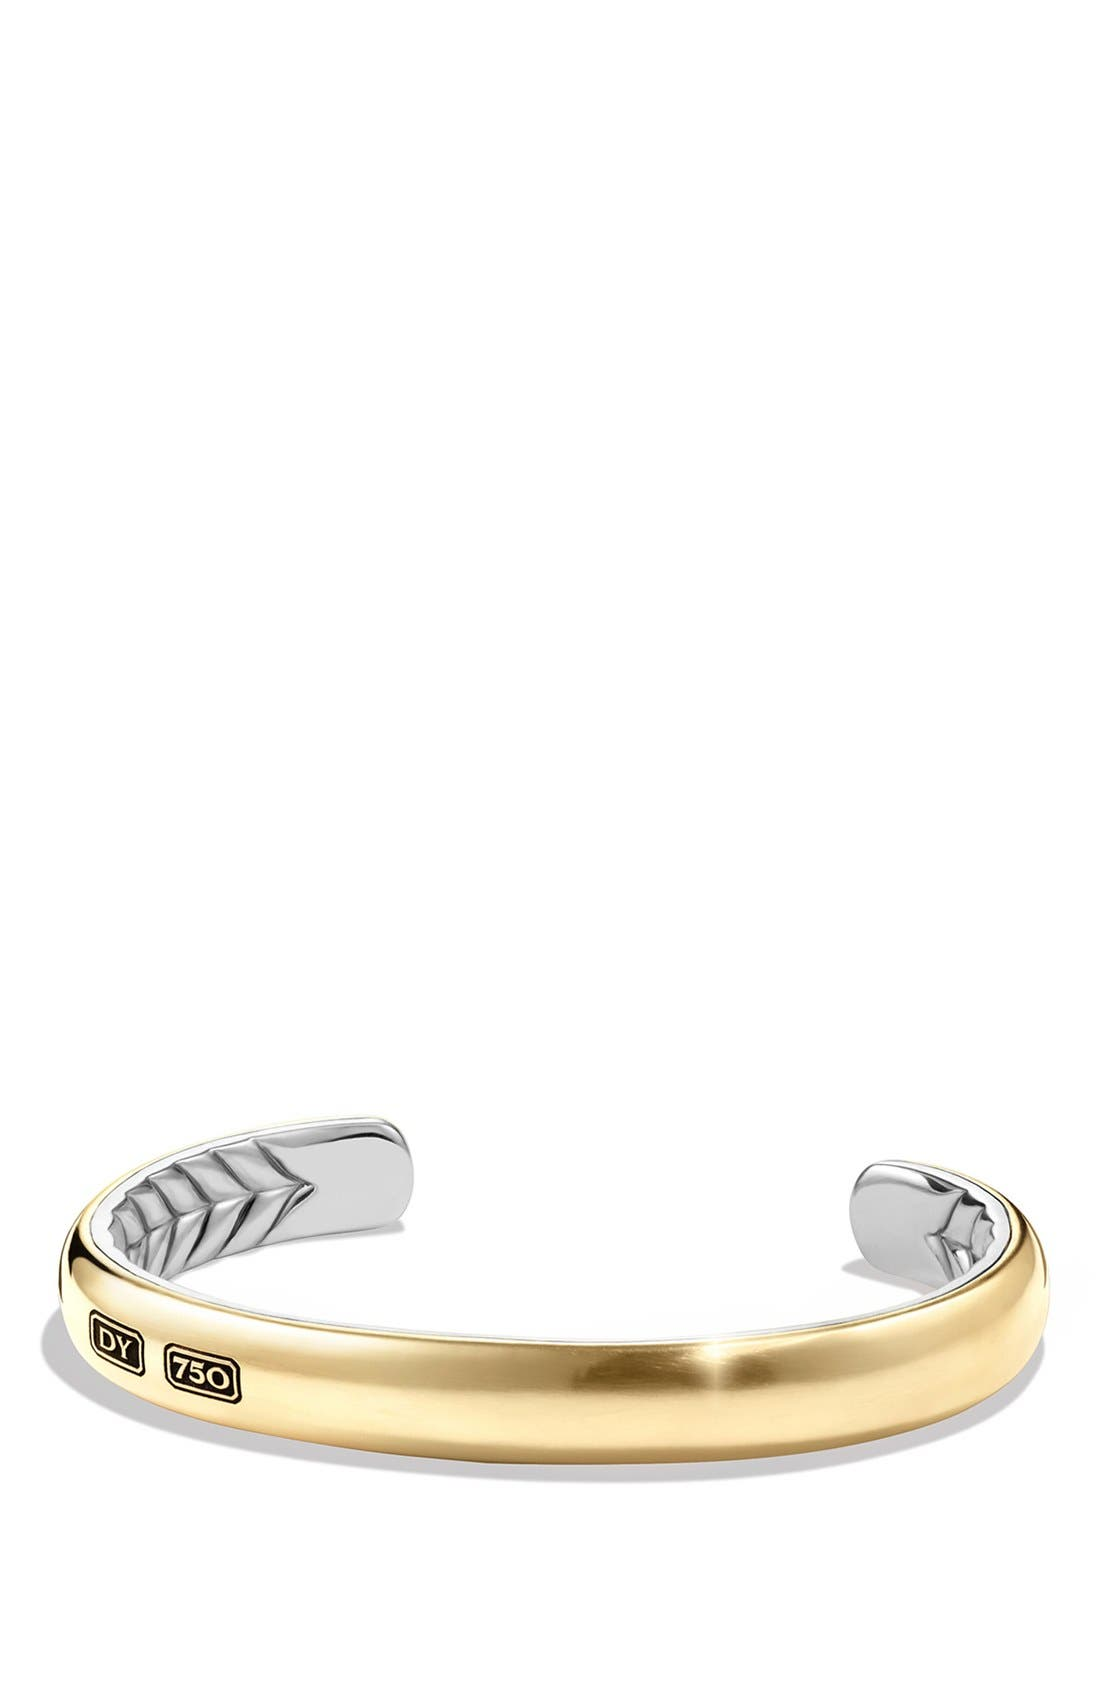 'Streamline' Cuff Bracelet with 18K Gold,                         Main,                         color, Two Tone